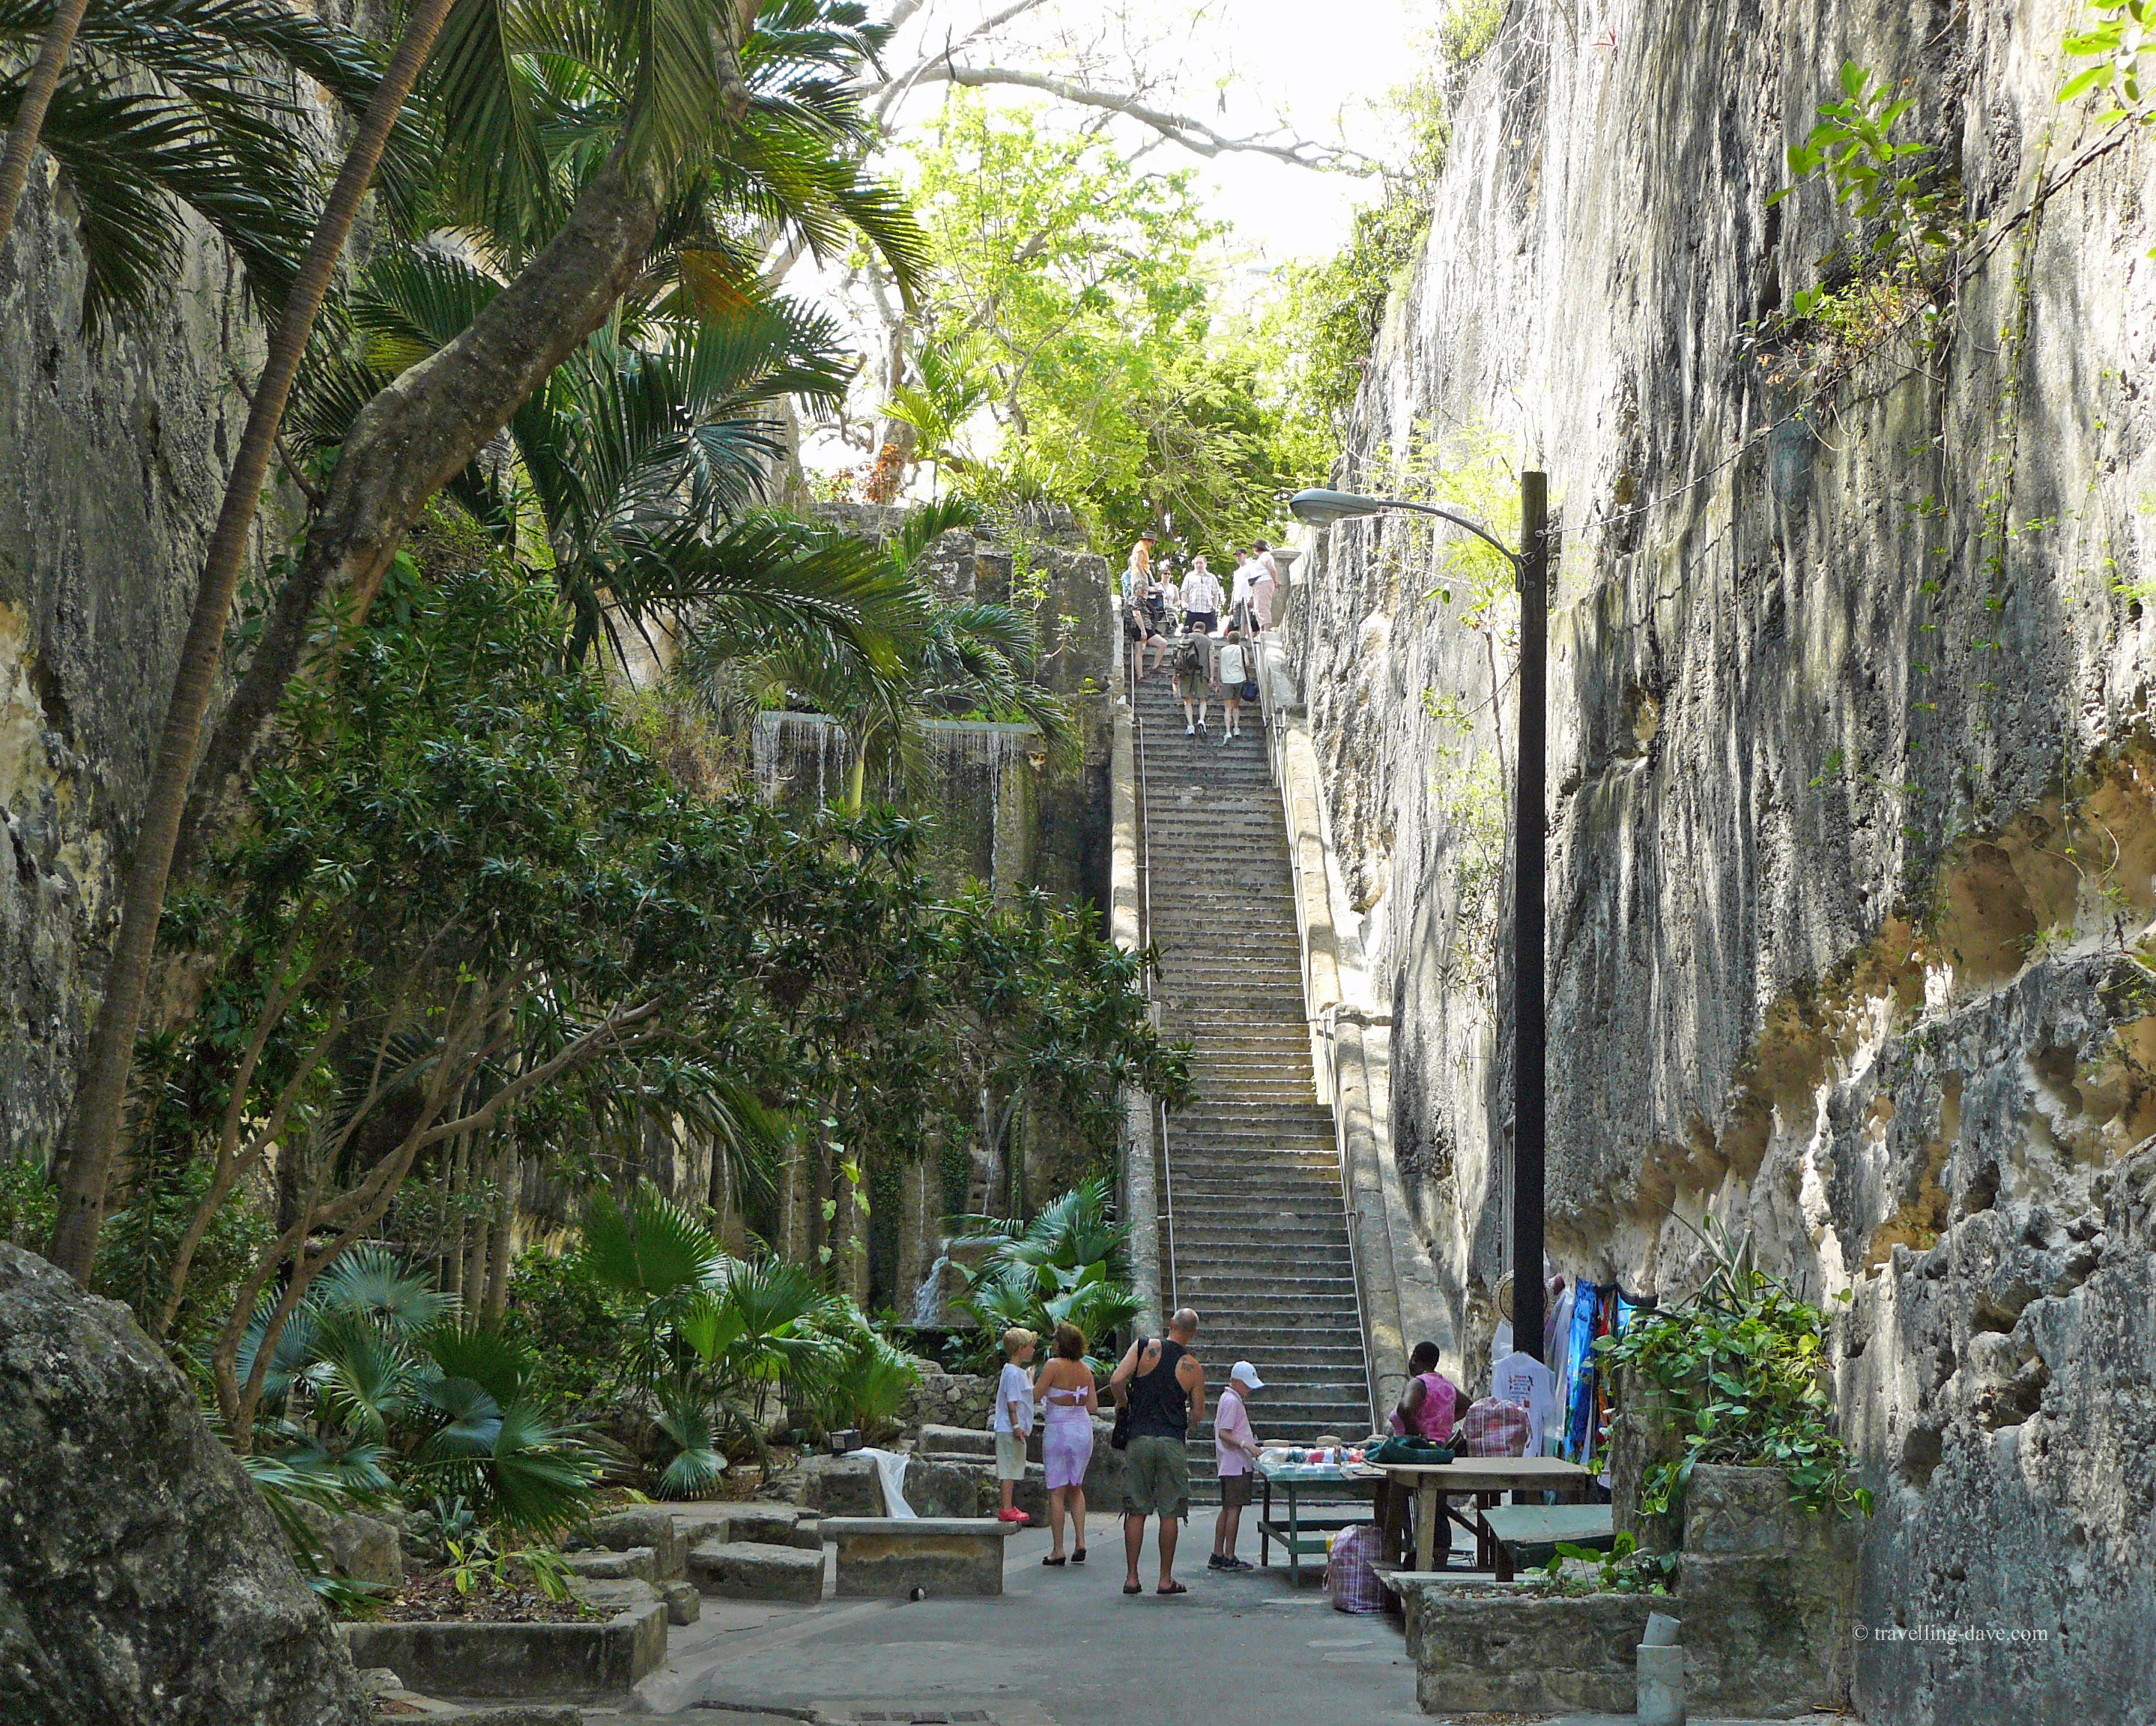 View of the Queen's Staircase in Nassau